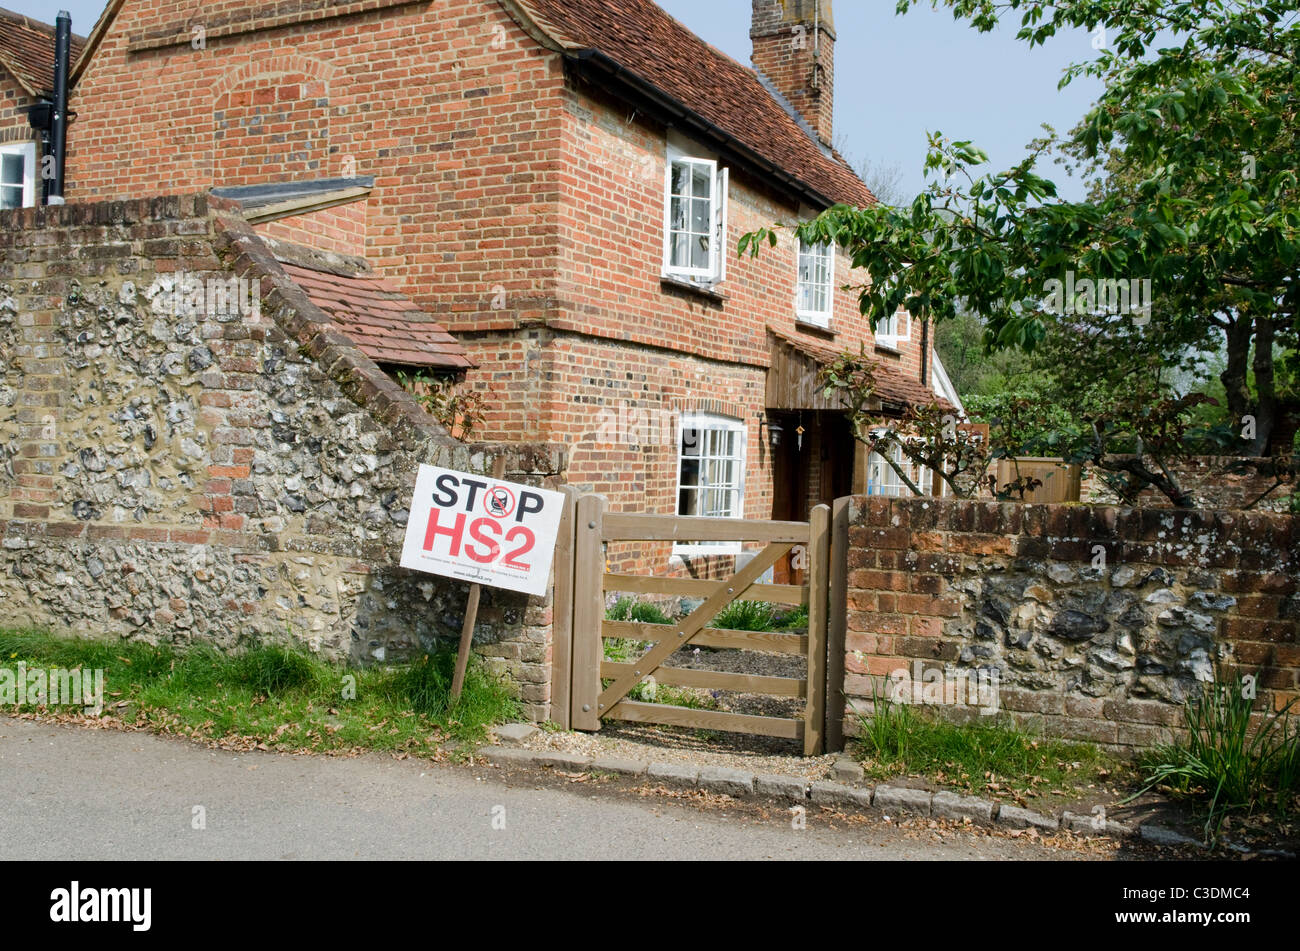 Opponents of the proposed HS2 high speed rail project show their posters in the village of Little Missenden - Stock Image